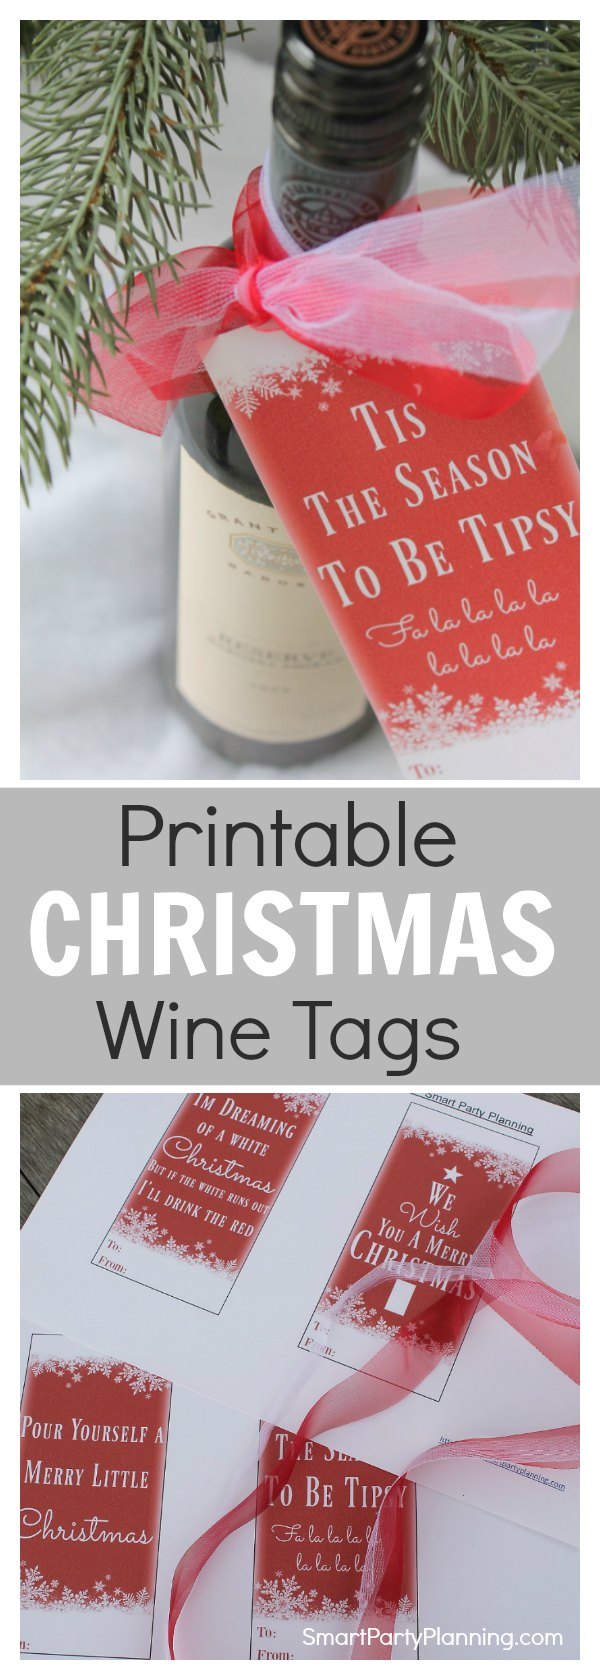 Easy DIY Christmas wine bottle tags. There are four designs to choose from, which easily attach to the neck of a wine bottle using your favorite Christmas ribbon. It's the perfect easy craft project for a quick Christmas or host gift.  Download the instant printable to use right away.  This is gift giving made easy.  Just print, cut and attach. It's super simple.  #Christmas #Winelover #Christmasgift #Wine #Printable #Instantdownload #Christmaswinetag #Winelabel #DIY #Craft